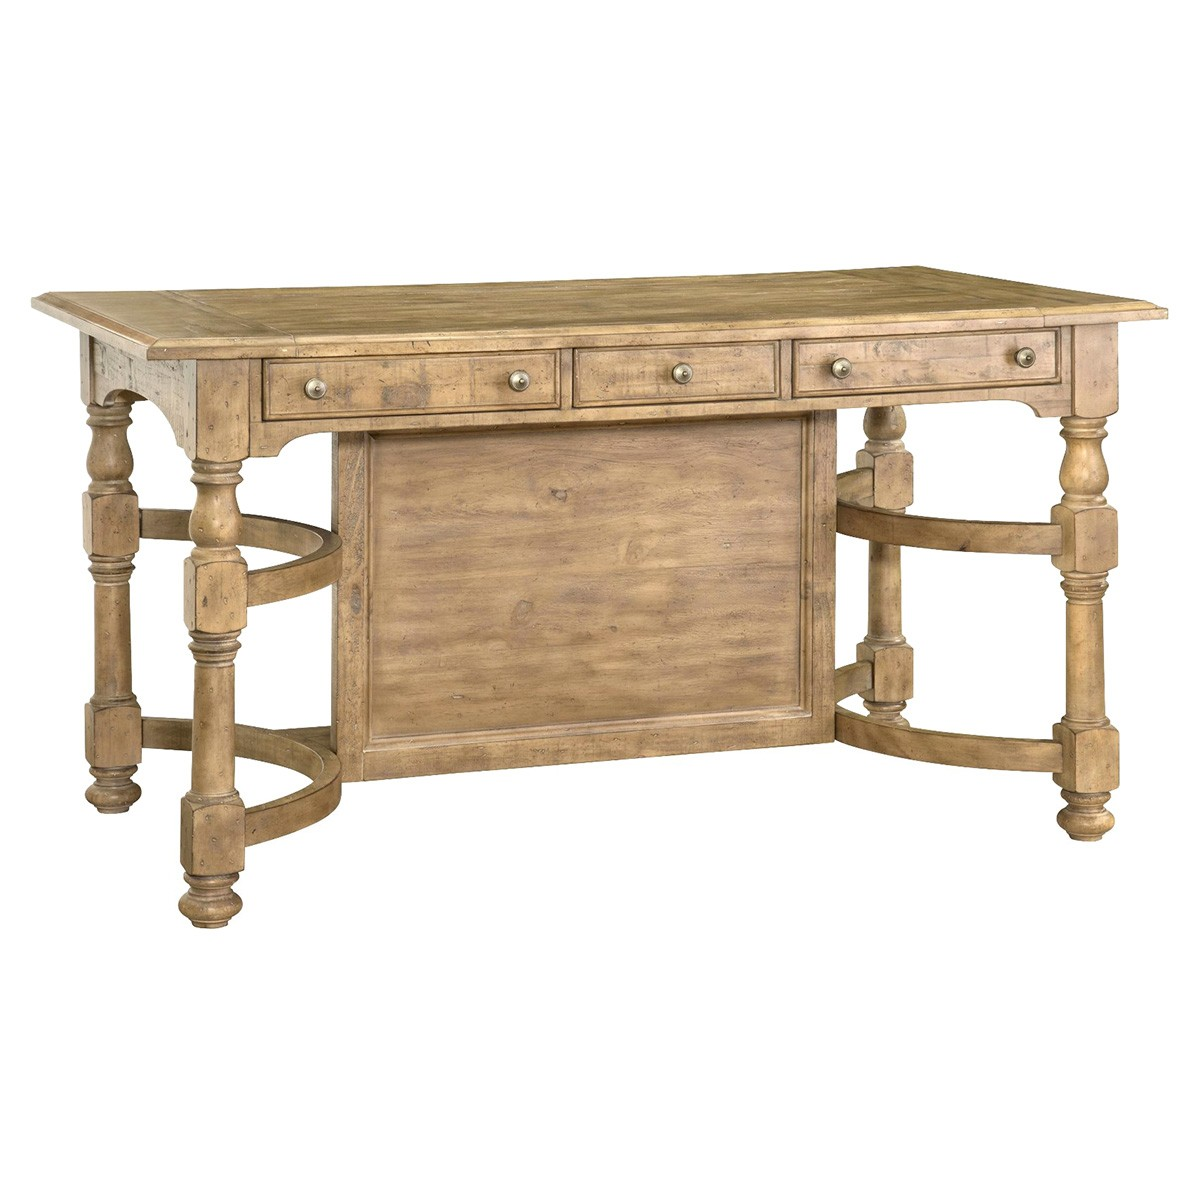 Graham Hills Pine Timber Counter Table, 173cm